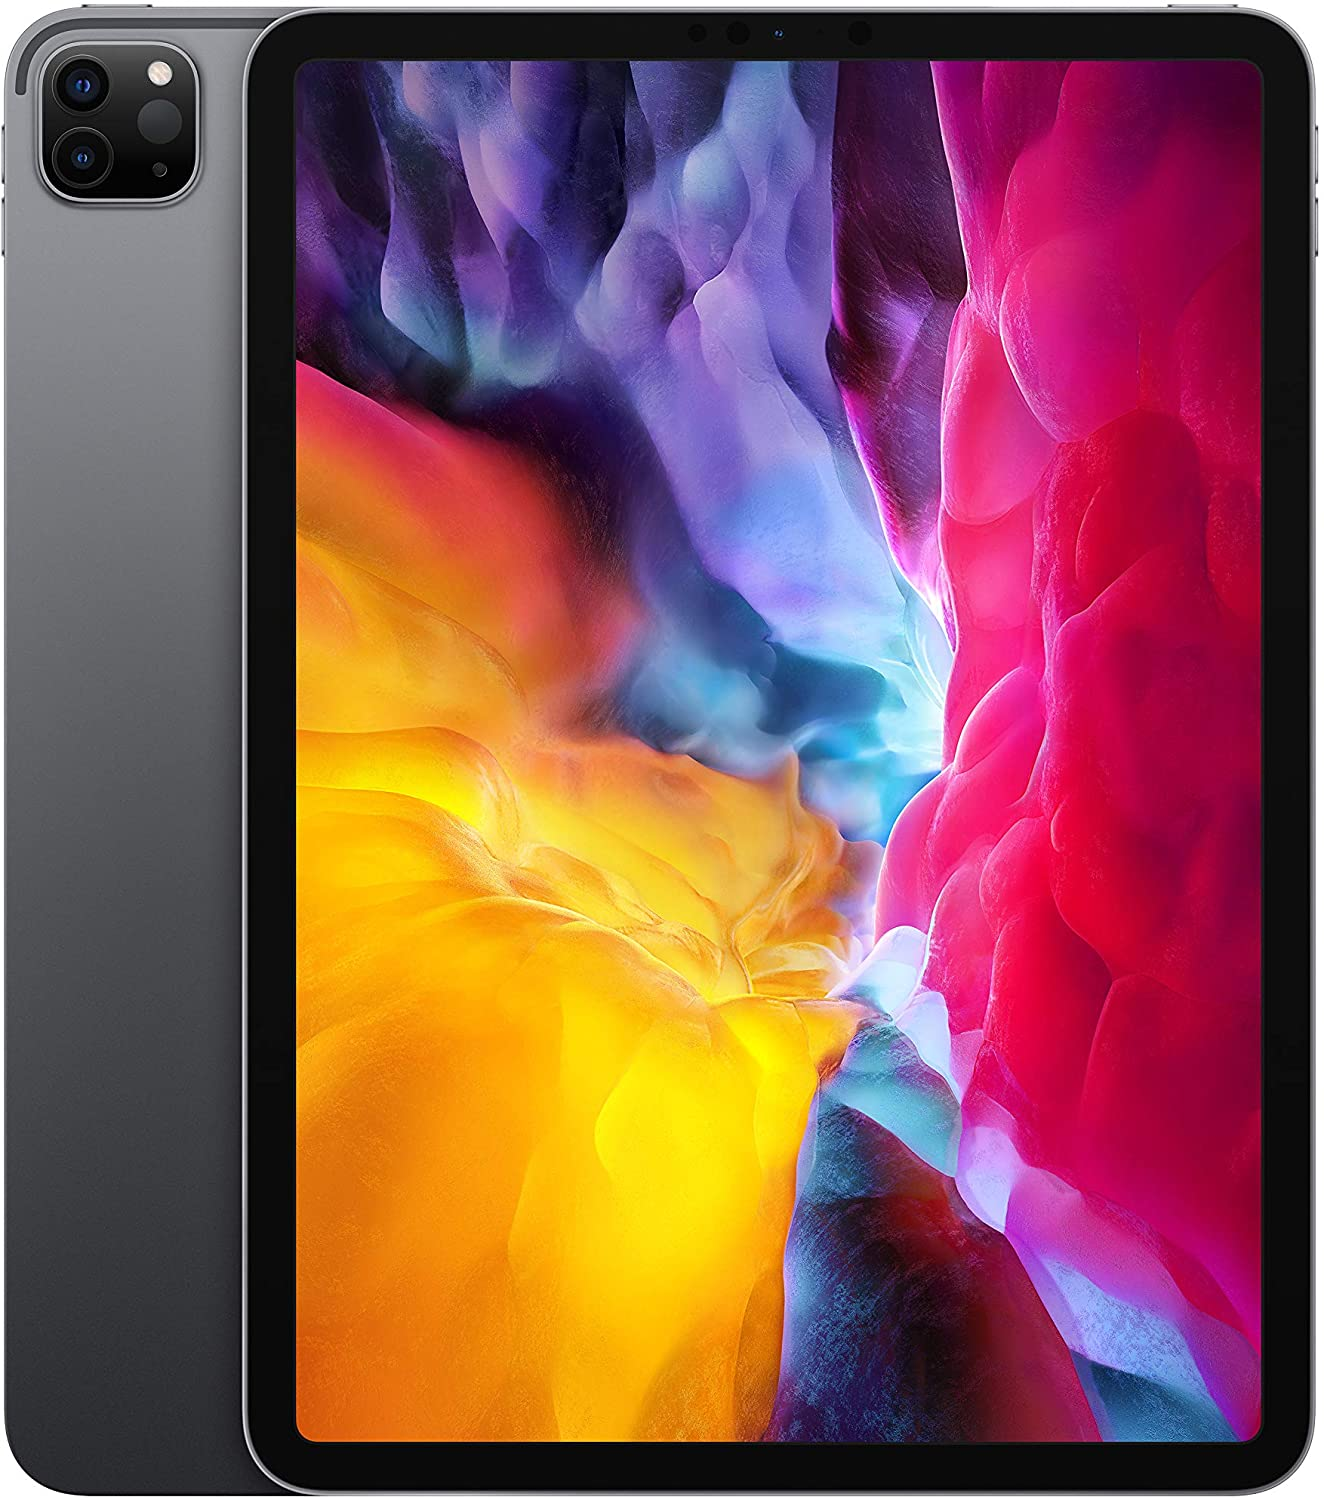 """Apple iPad Pro 11"""" (2020) Wifi 256GB with Screen Protector and Folding Case (Black) - Space Gray"""